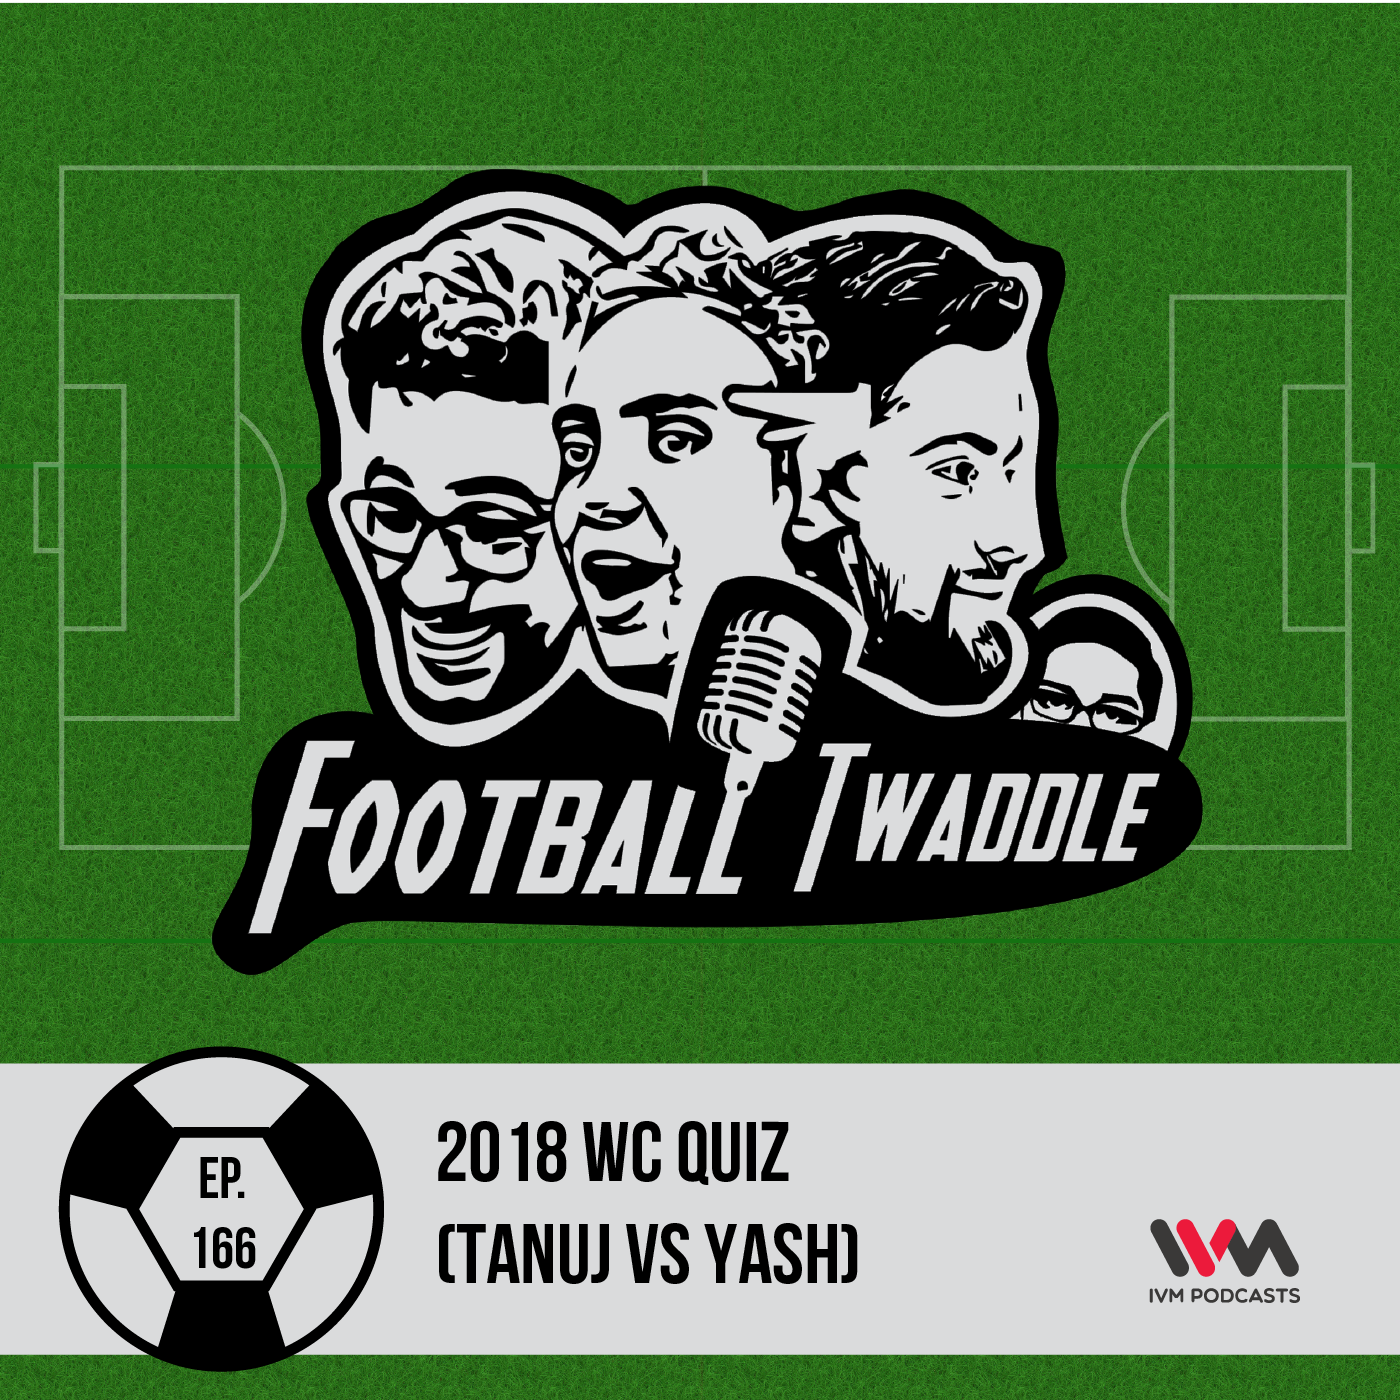 2018 WC Quiz (Tanuj vs Yash)